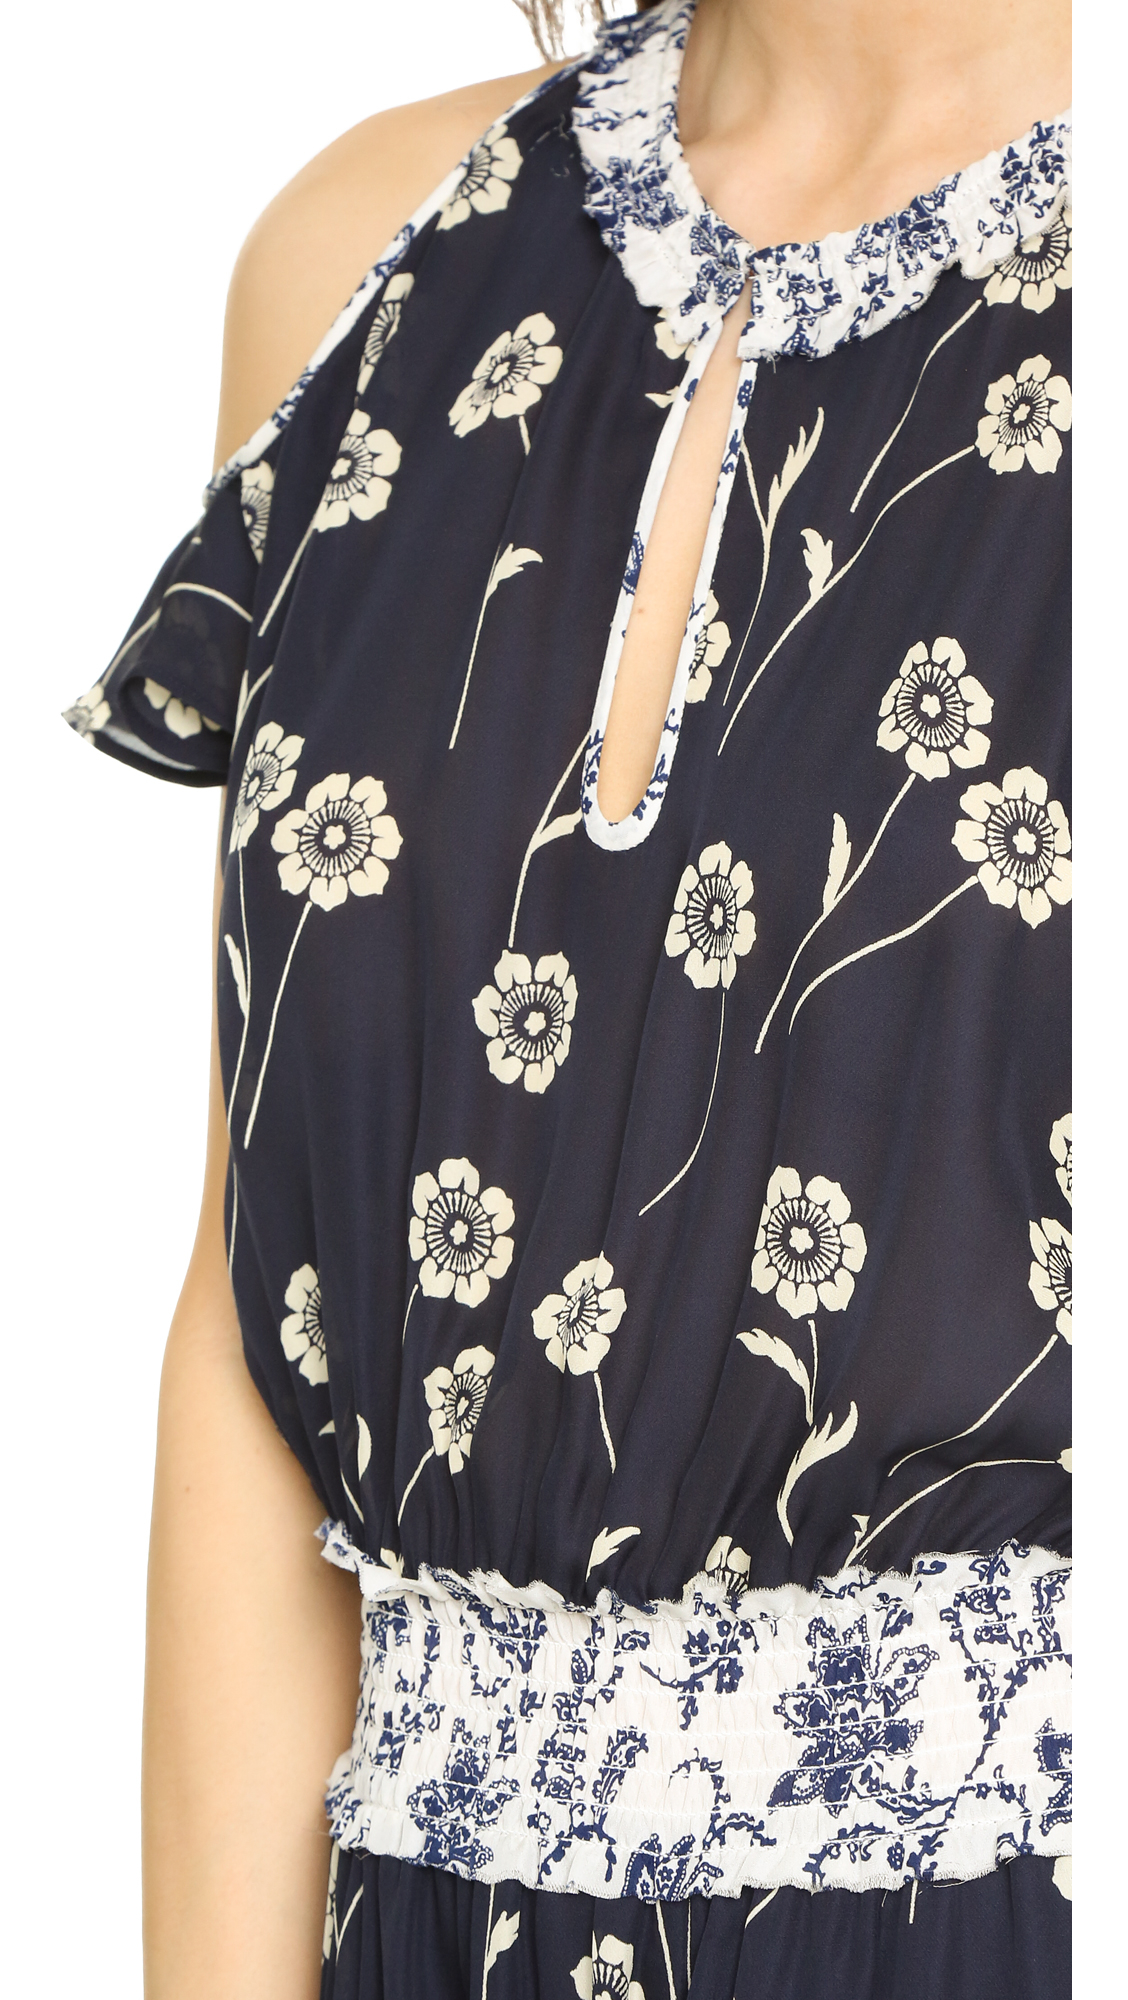 10 crosby derek lam floral sleeveless knot detail dress in for Derek lam 10 crosby shirt dress